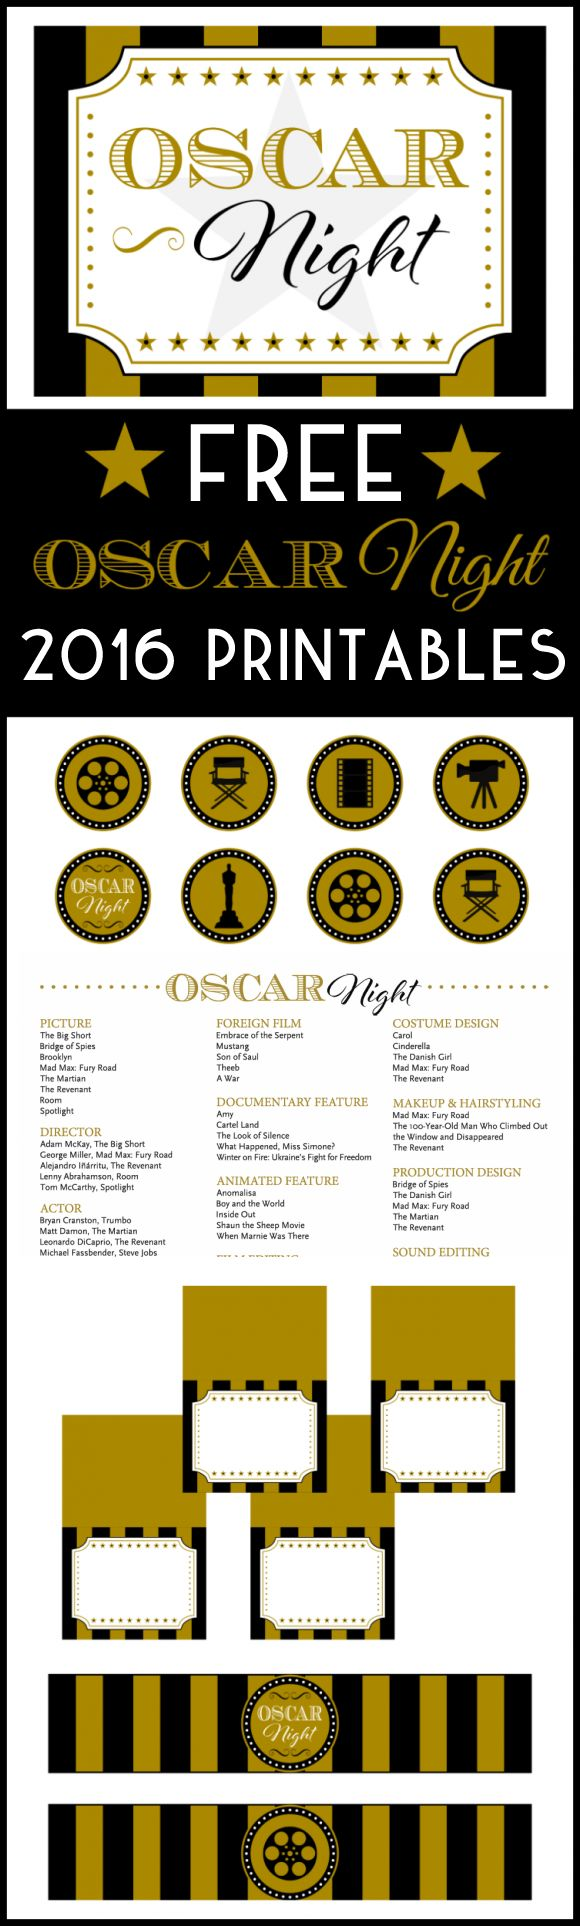 Best 10+ Oscar night ideas on Pinterest | Oscar party, Oscar ...